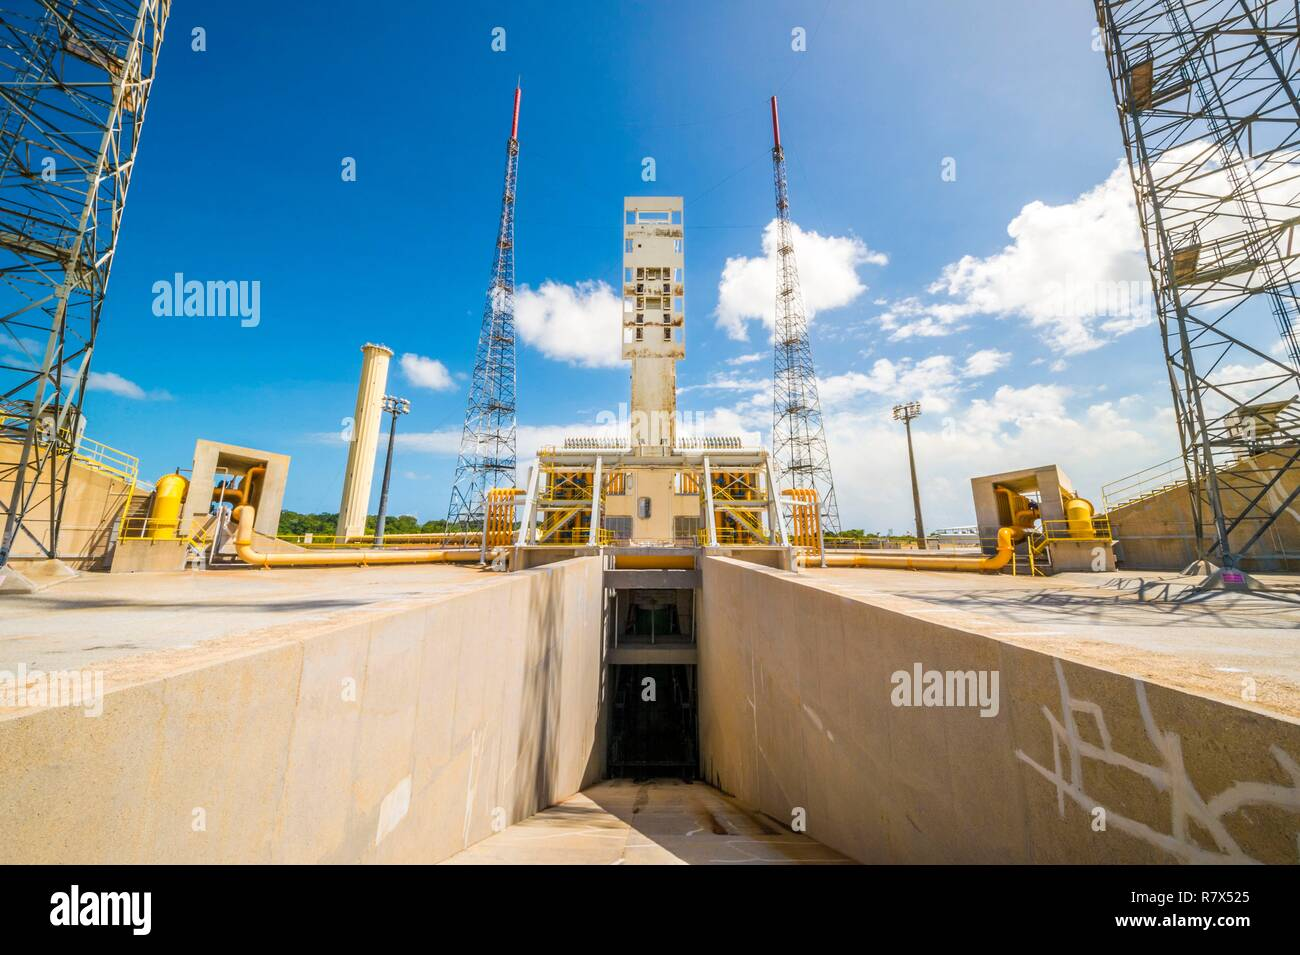 France, French Guiana, Kourou, Guiana Space Center (CSG), launch area of the Ariane V rocket, flares (deflectors of jets) of the Vulcain engine and the two booster thrusters (EAP) - Stock Image